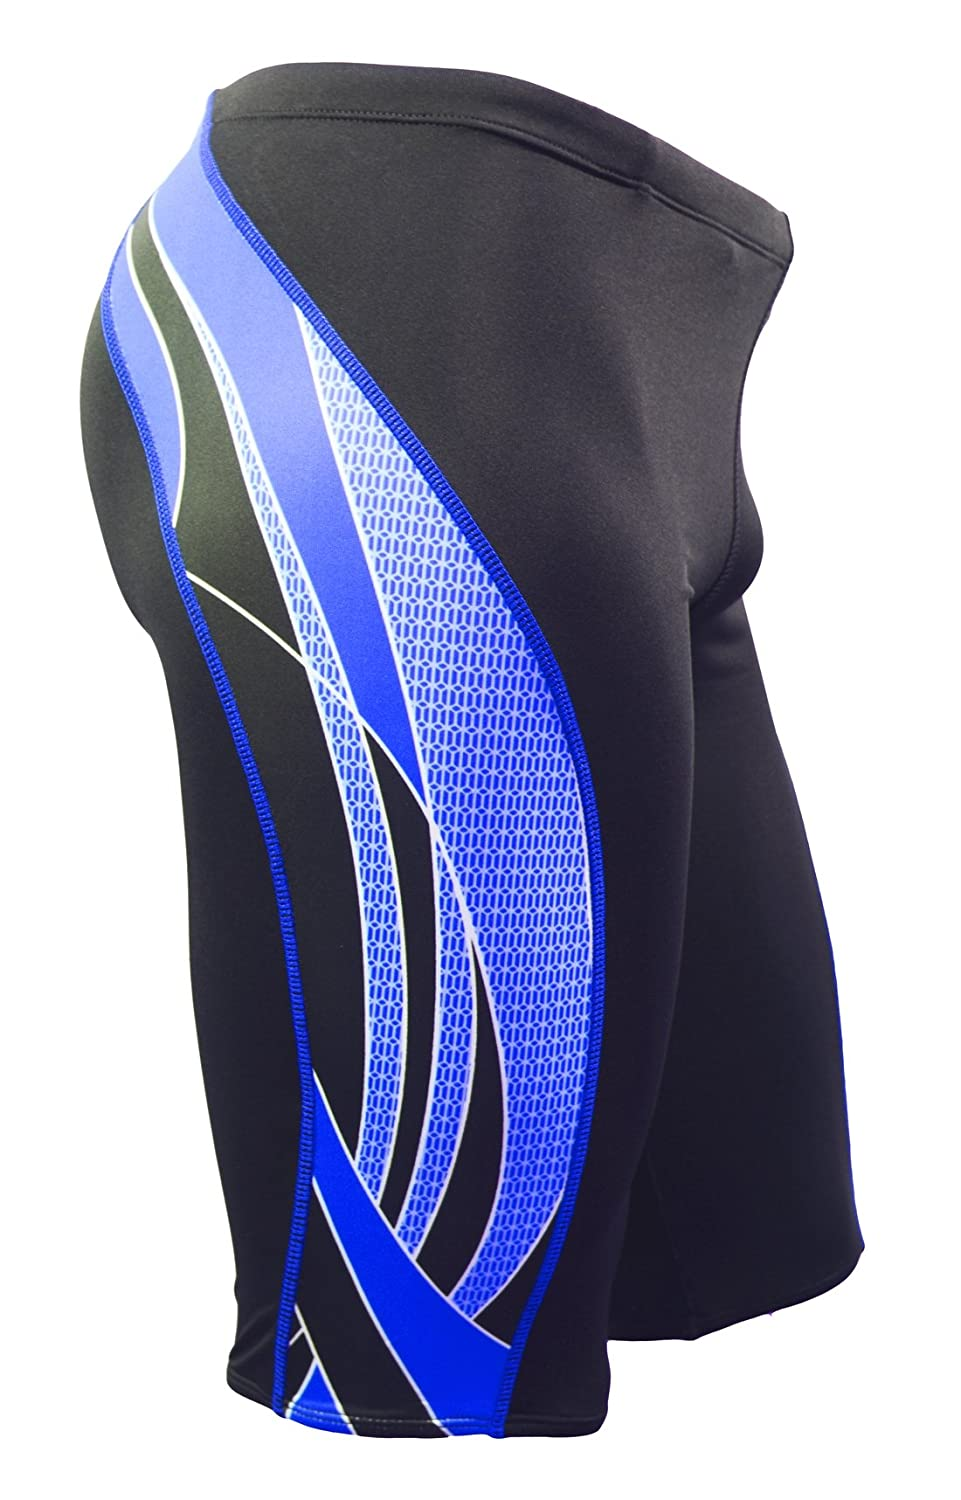 22 MJ009 - Black//Blue Adoretex Boys Side Wings Swim Jammer Swimwear